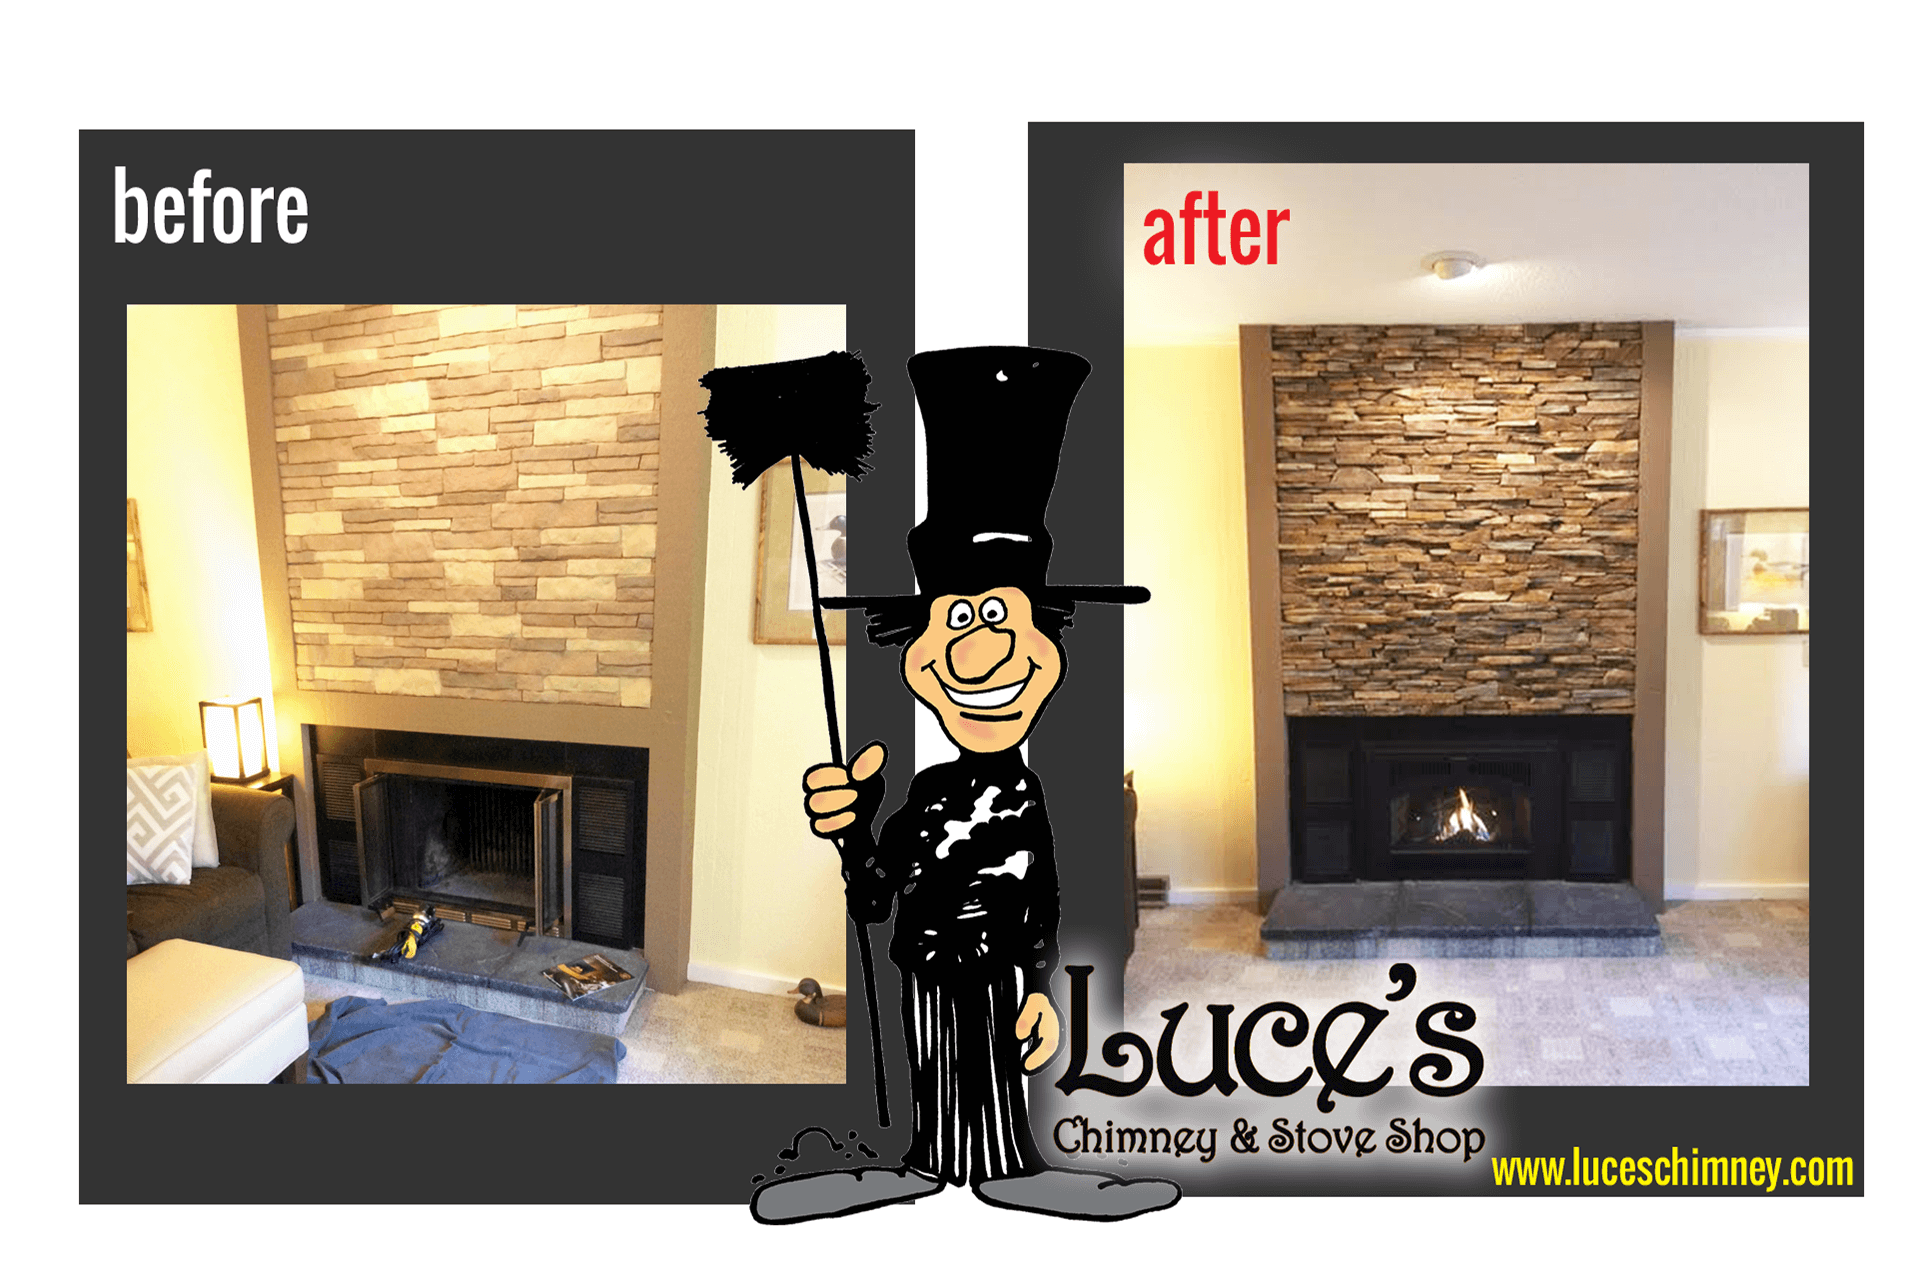 Fireplace updates, before and after fireplace remodeling and custom fireplace stonework by Luce's Chimney & Stove Shop in Swanton OH, serving Ohio, Michigan and Indiana.